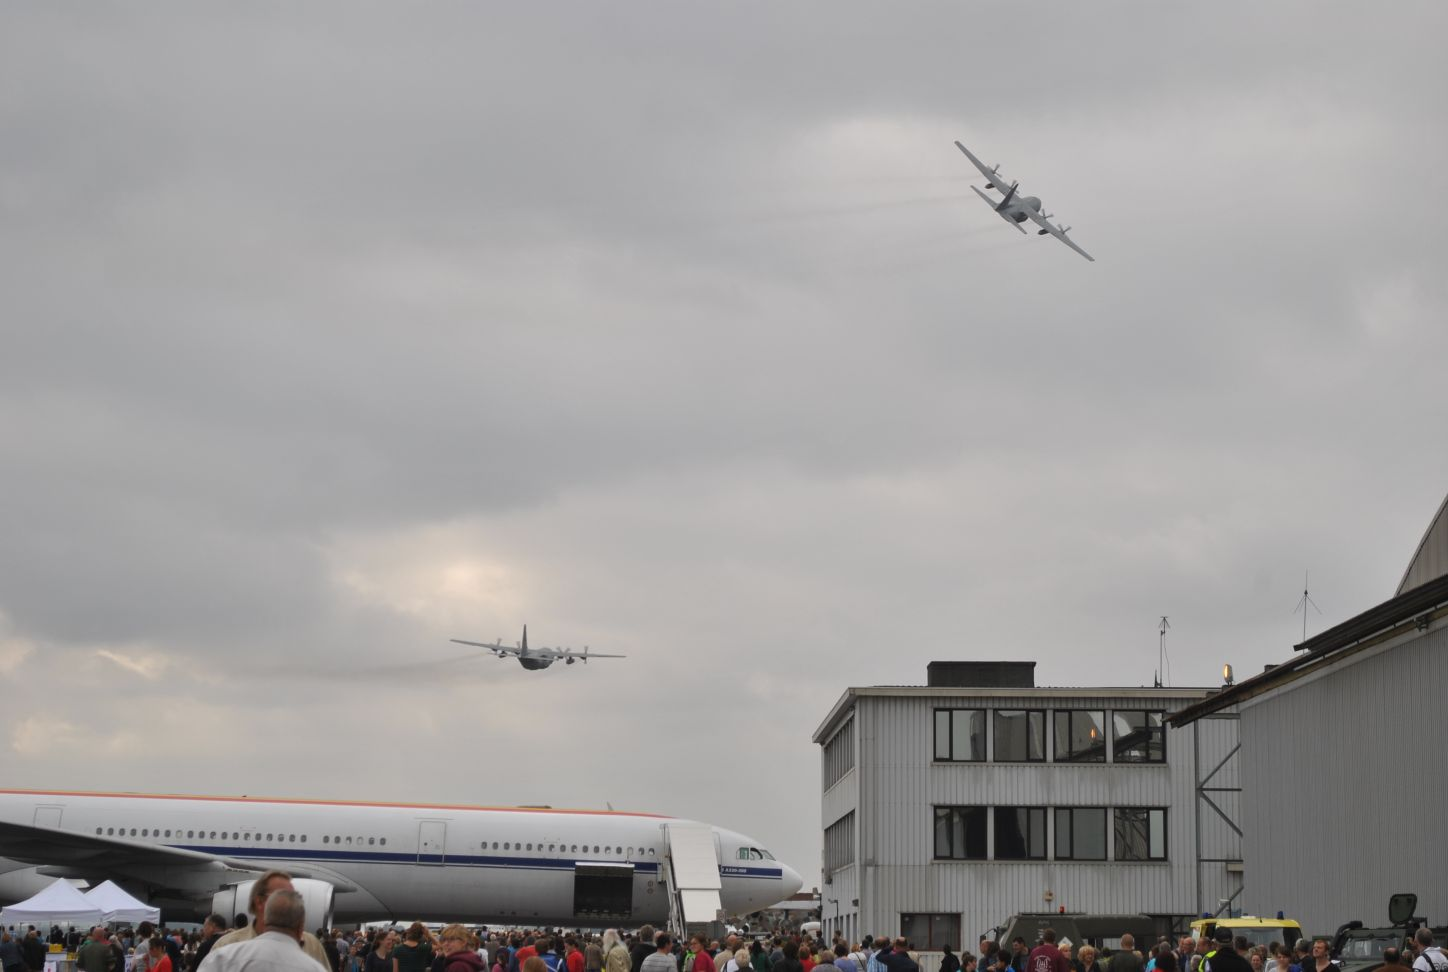 action at Melsbroek Air Base